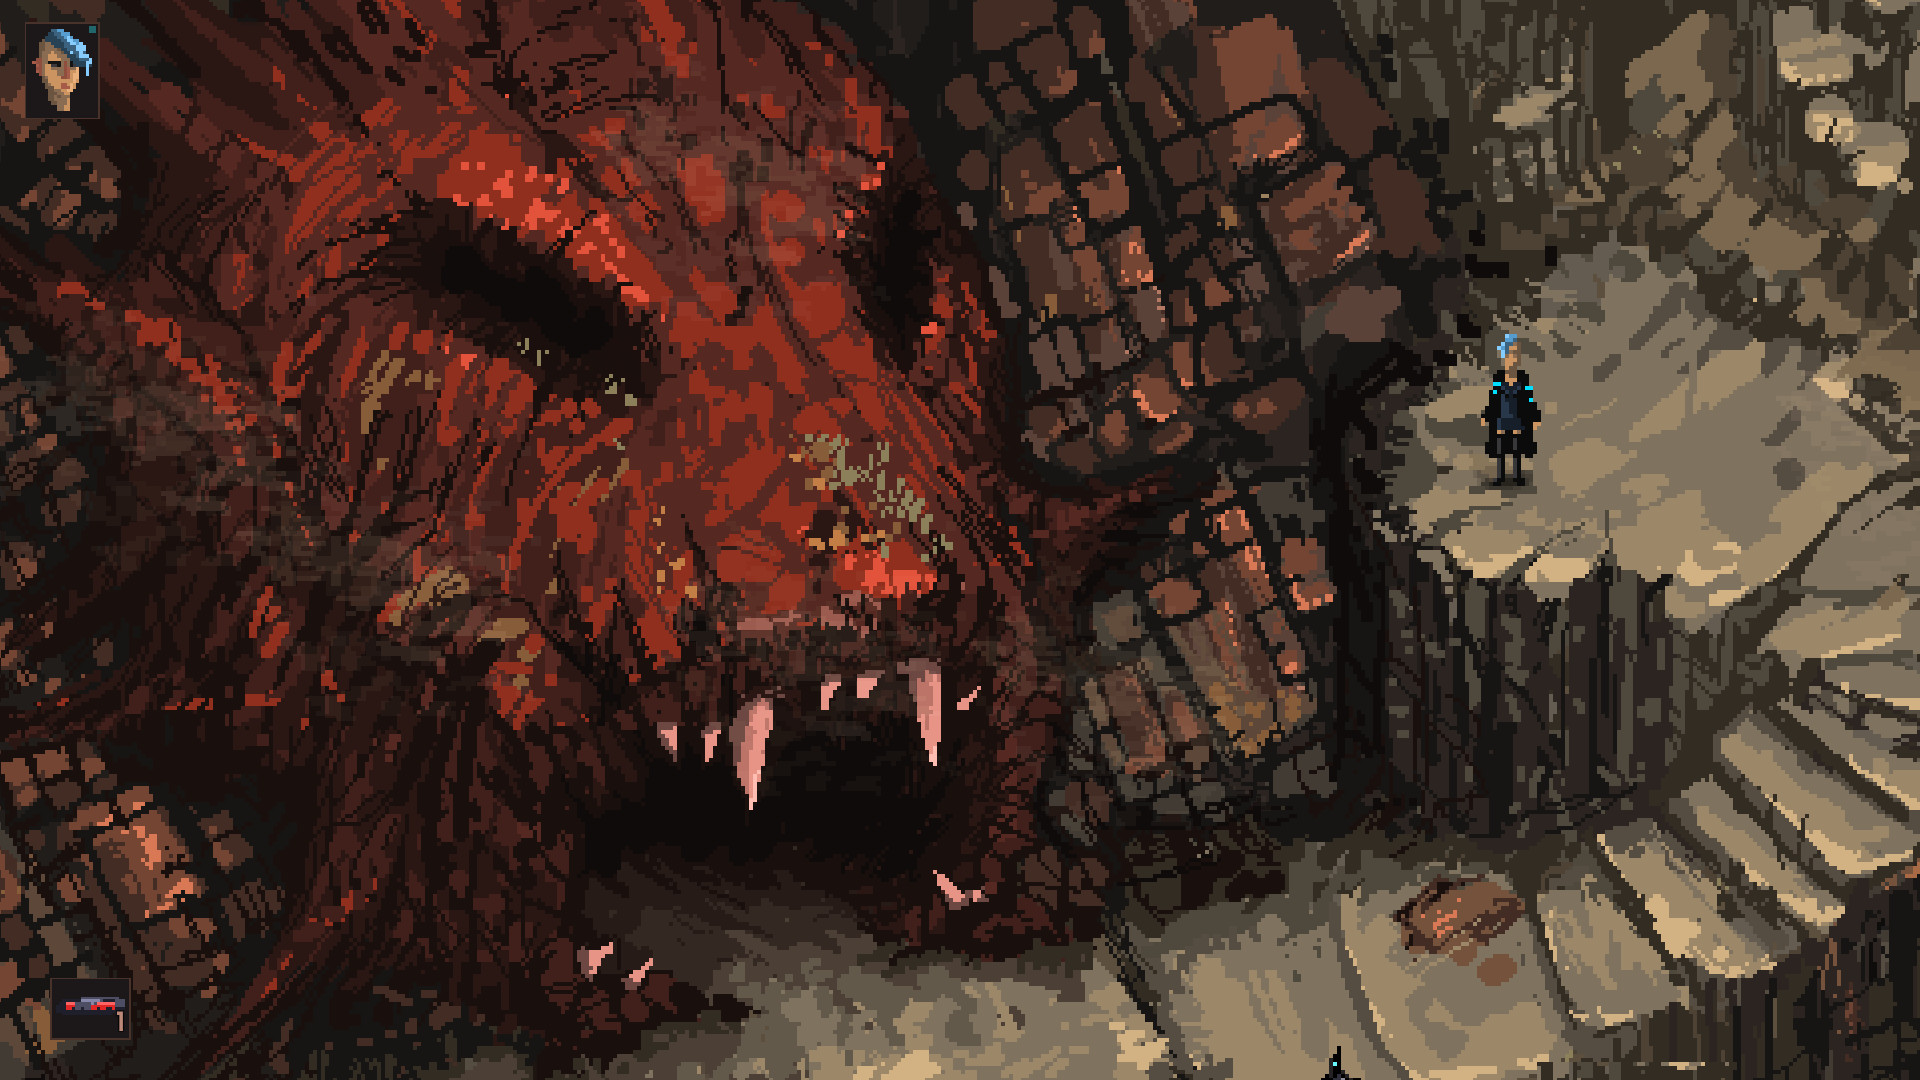 The Death Trash demo is now permanently available on Steam